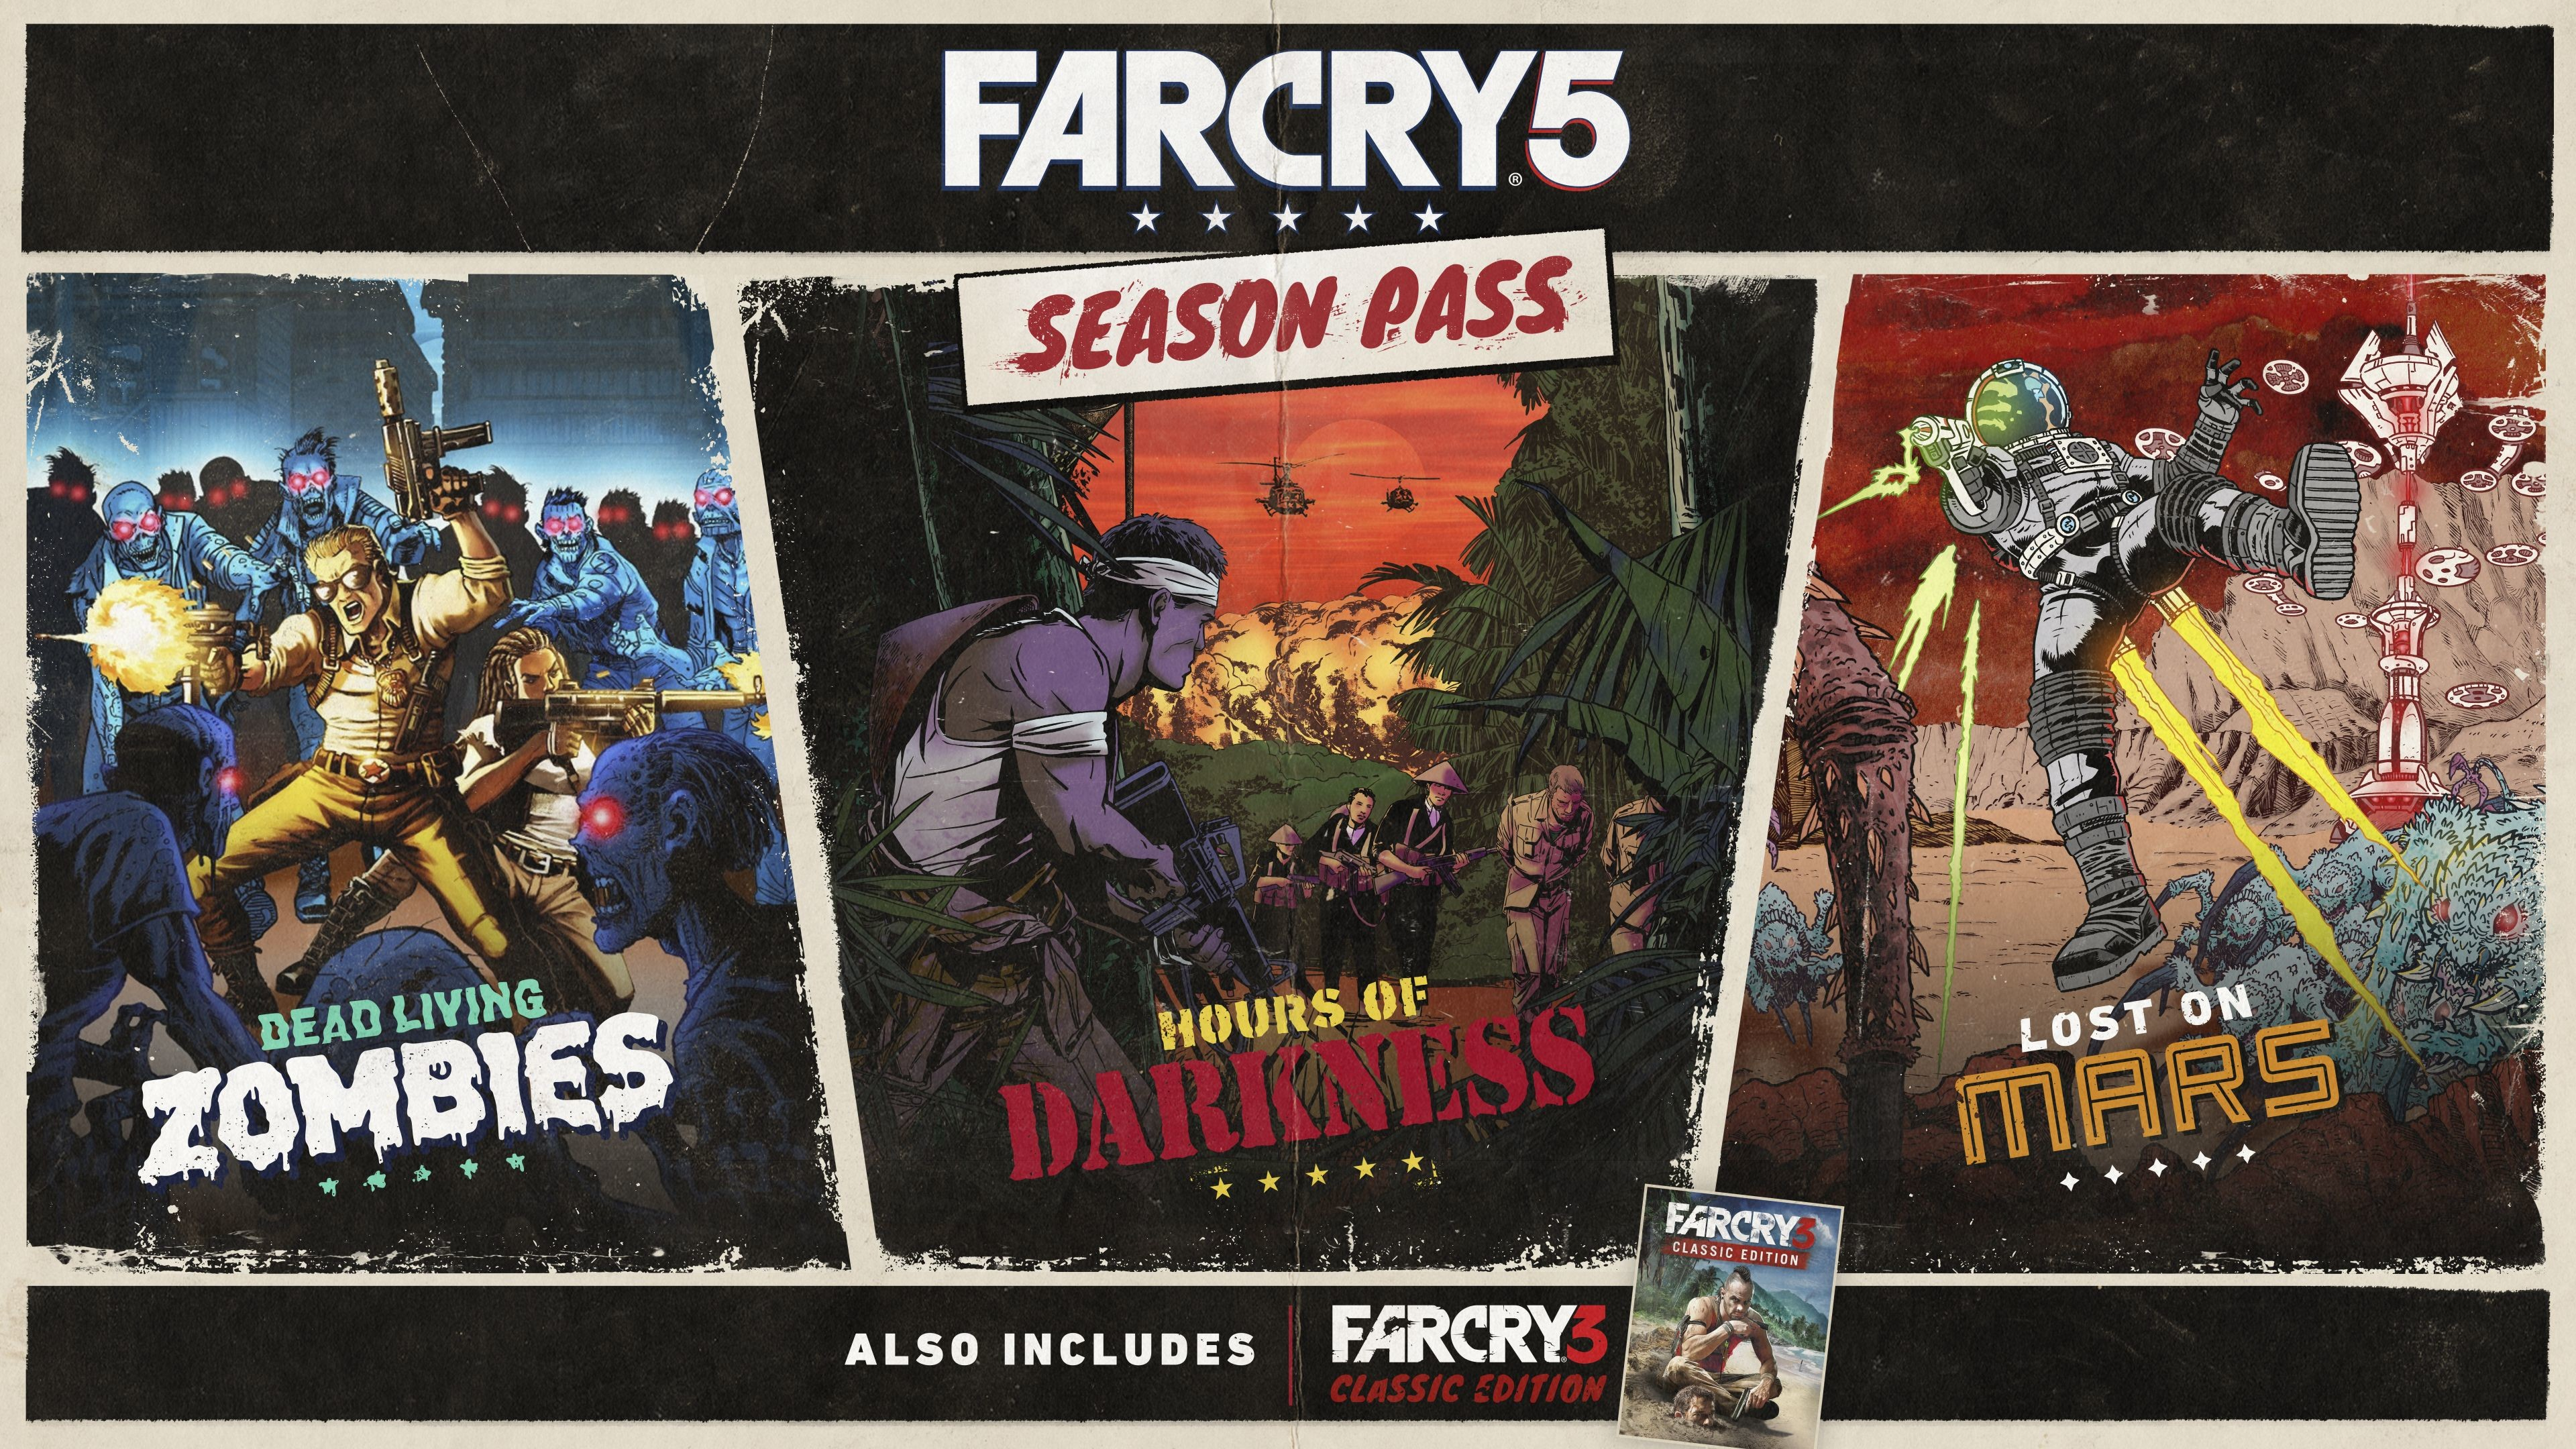 Far Cry 5 Season Pass Details Revealed, Comes With Far Cry 3